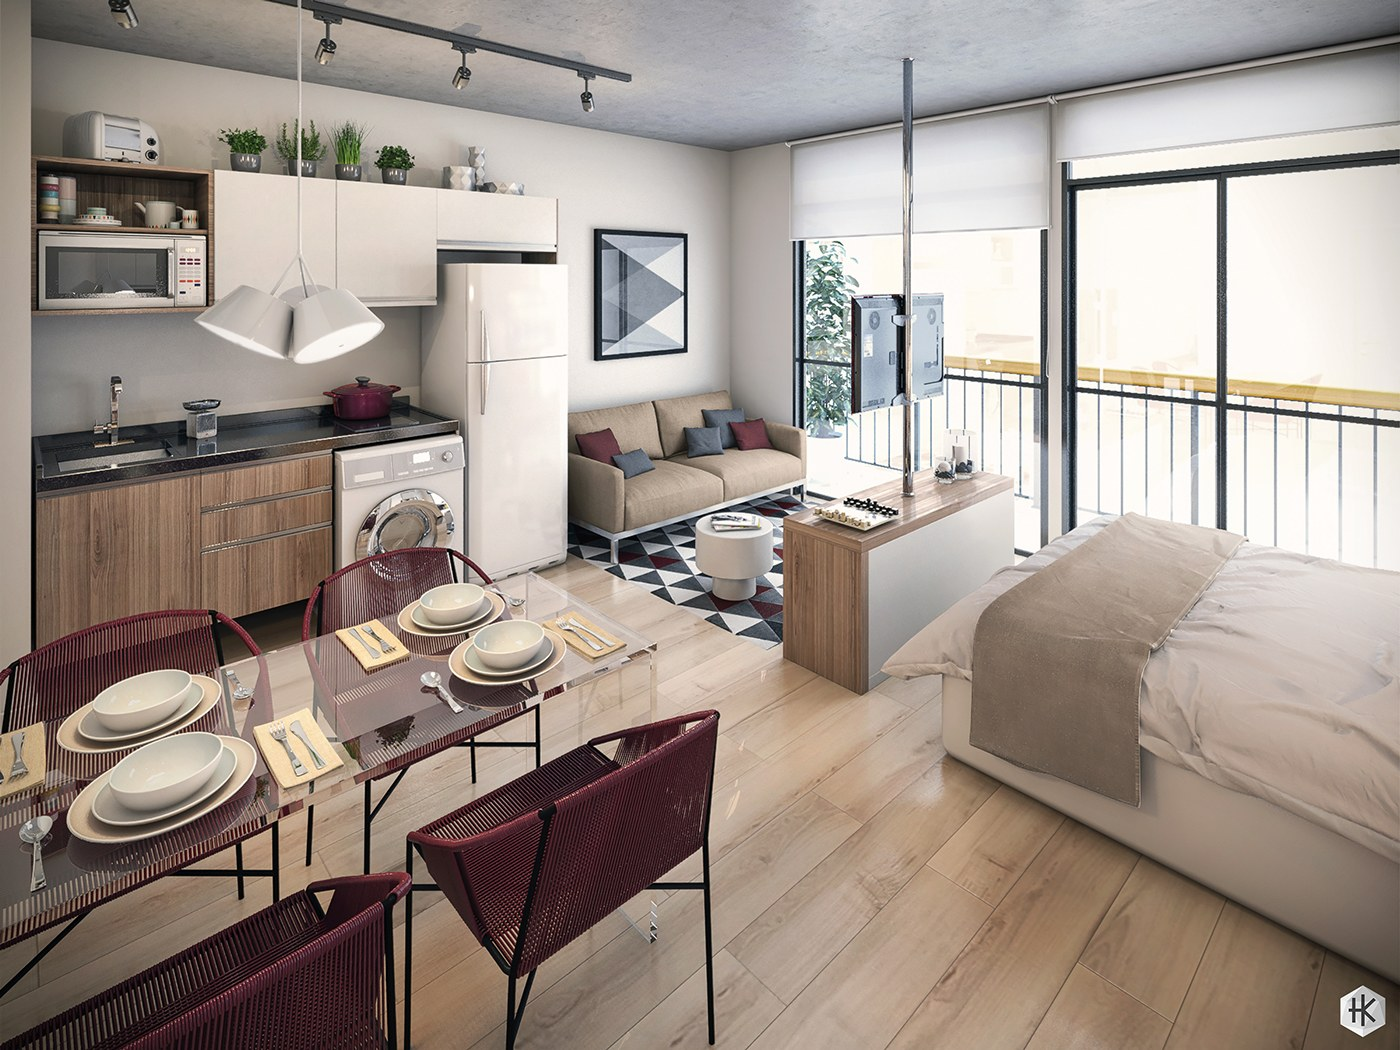 Small Studio Apartments With Beautiful Design - Designing studio apartments